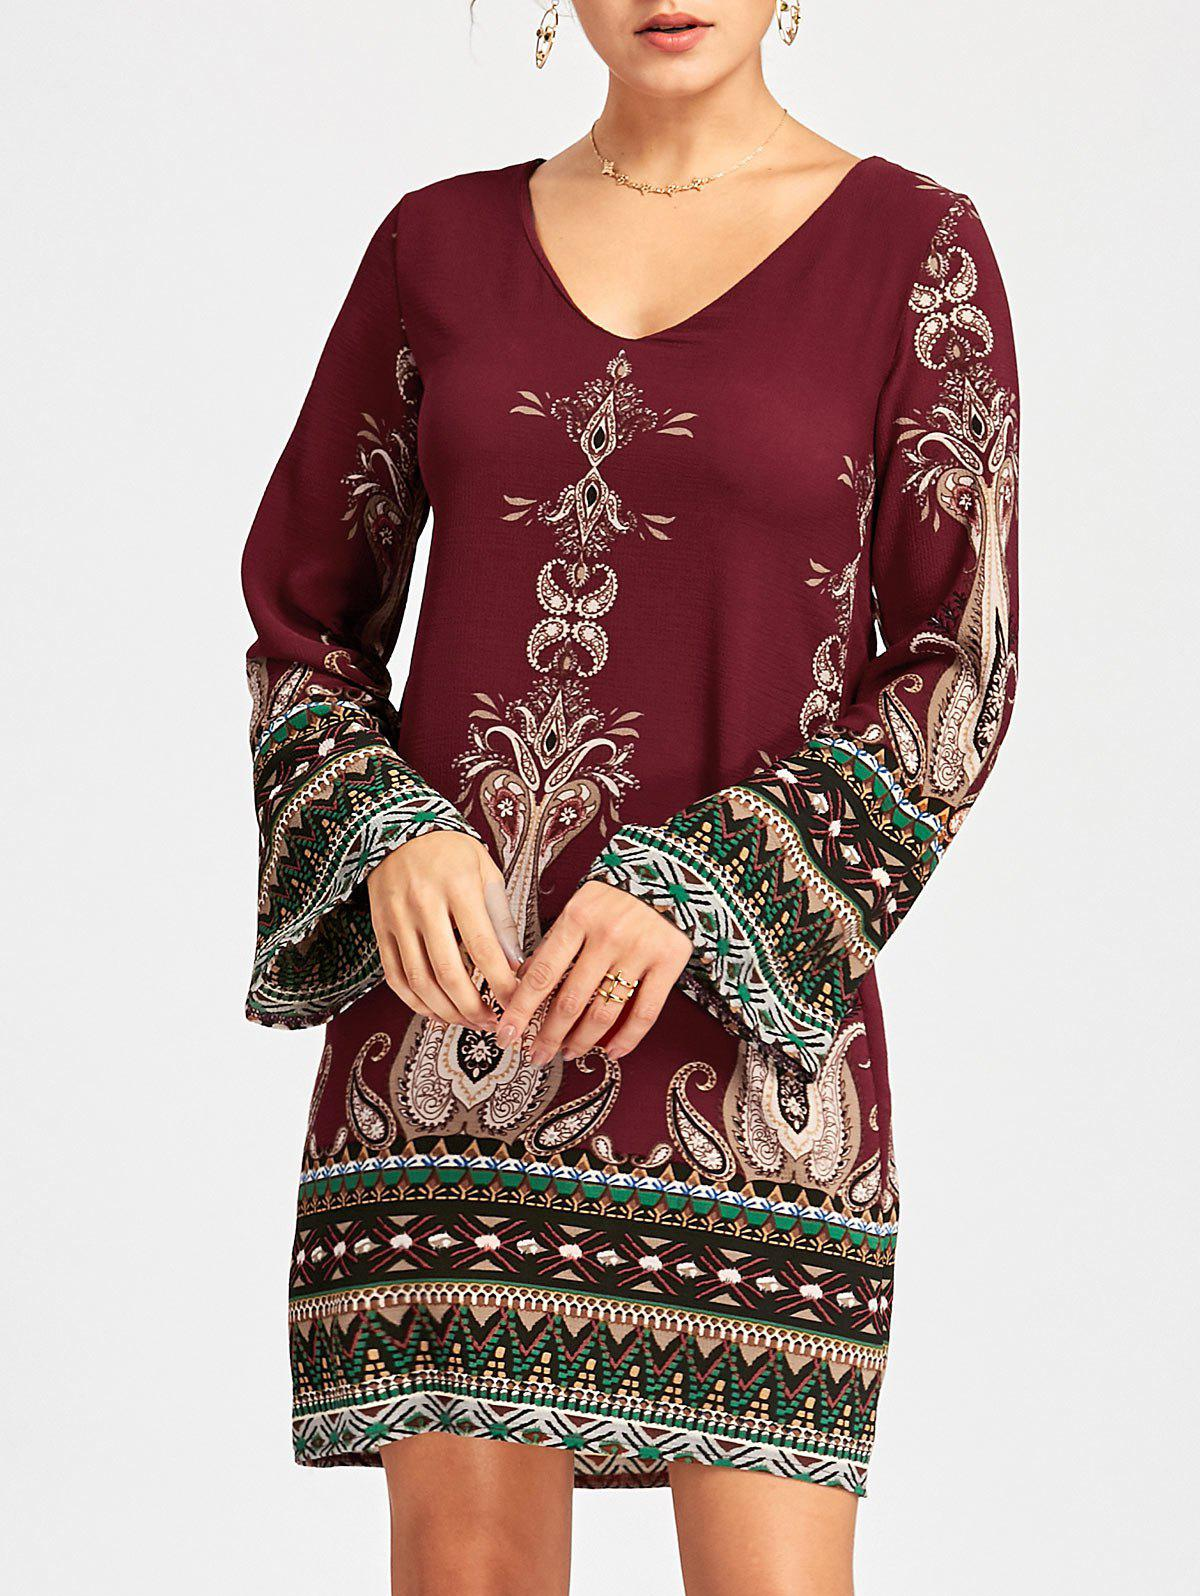 Bohemian Bell Sleeve Graphic Mini Dress - WINE RED XL